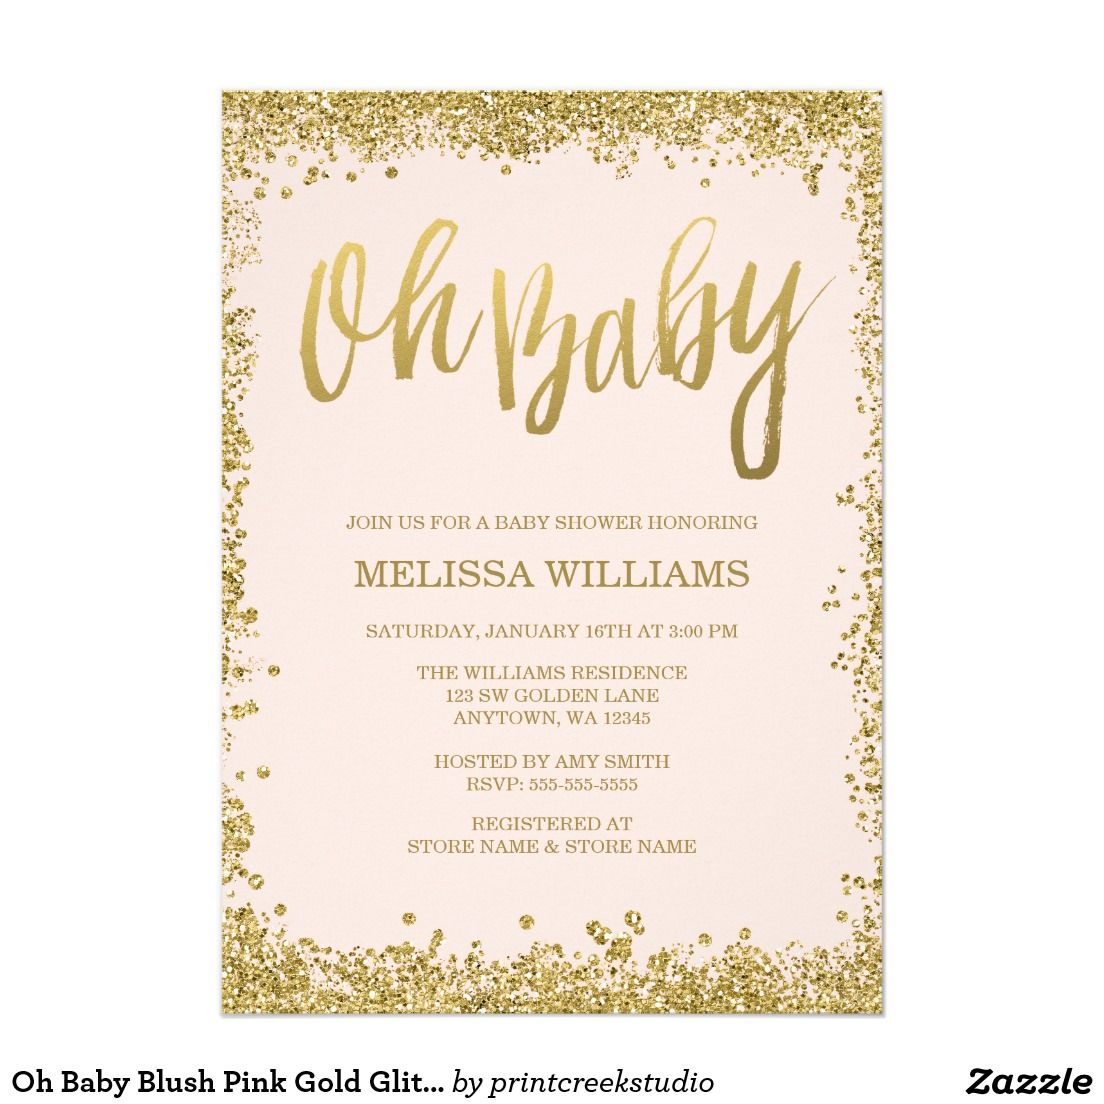 Oh Baby Blush Pink Gold Glitter Baby Shower Card | Babies, Baby girl ...